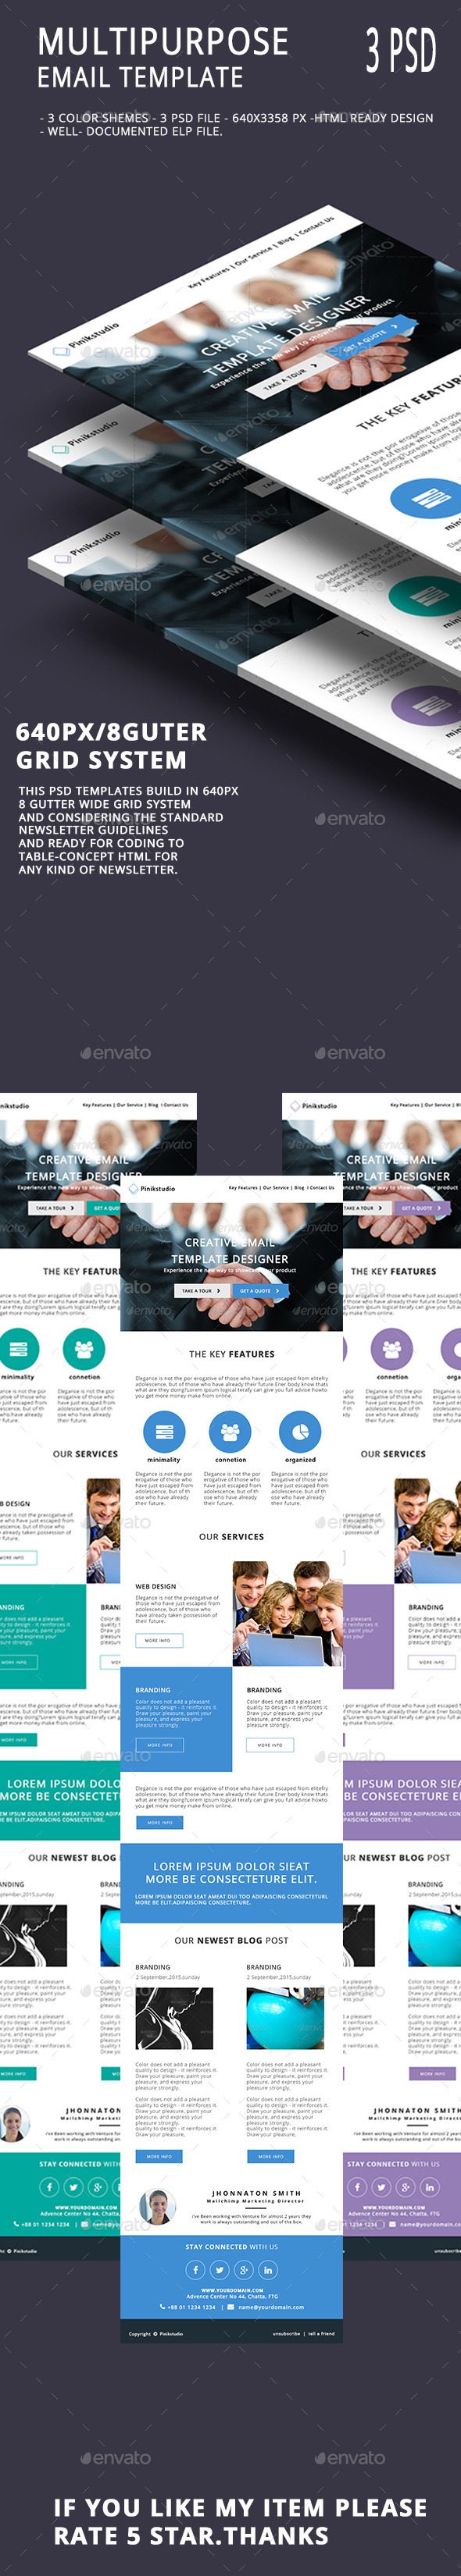 Multipurpose Email Template V4 - E-newsletters Web Elements